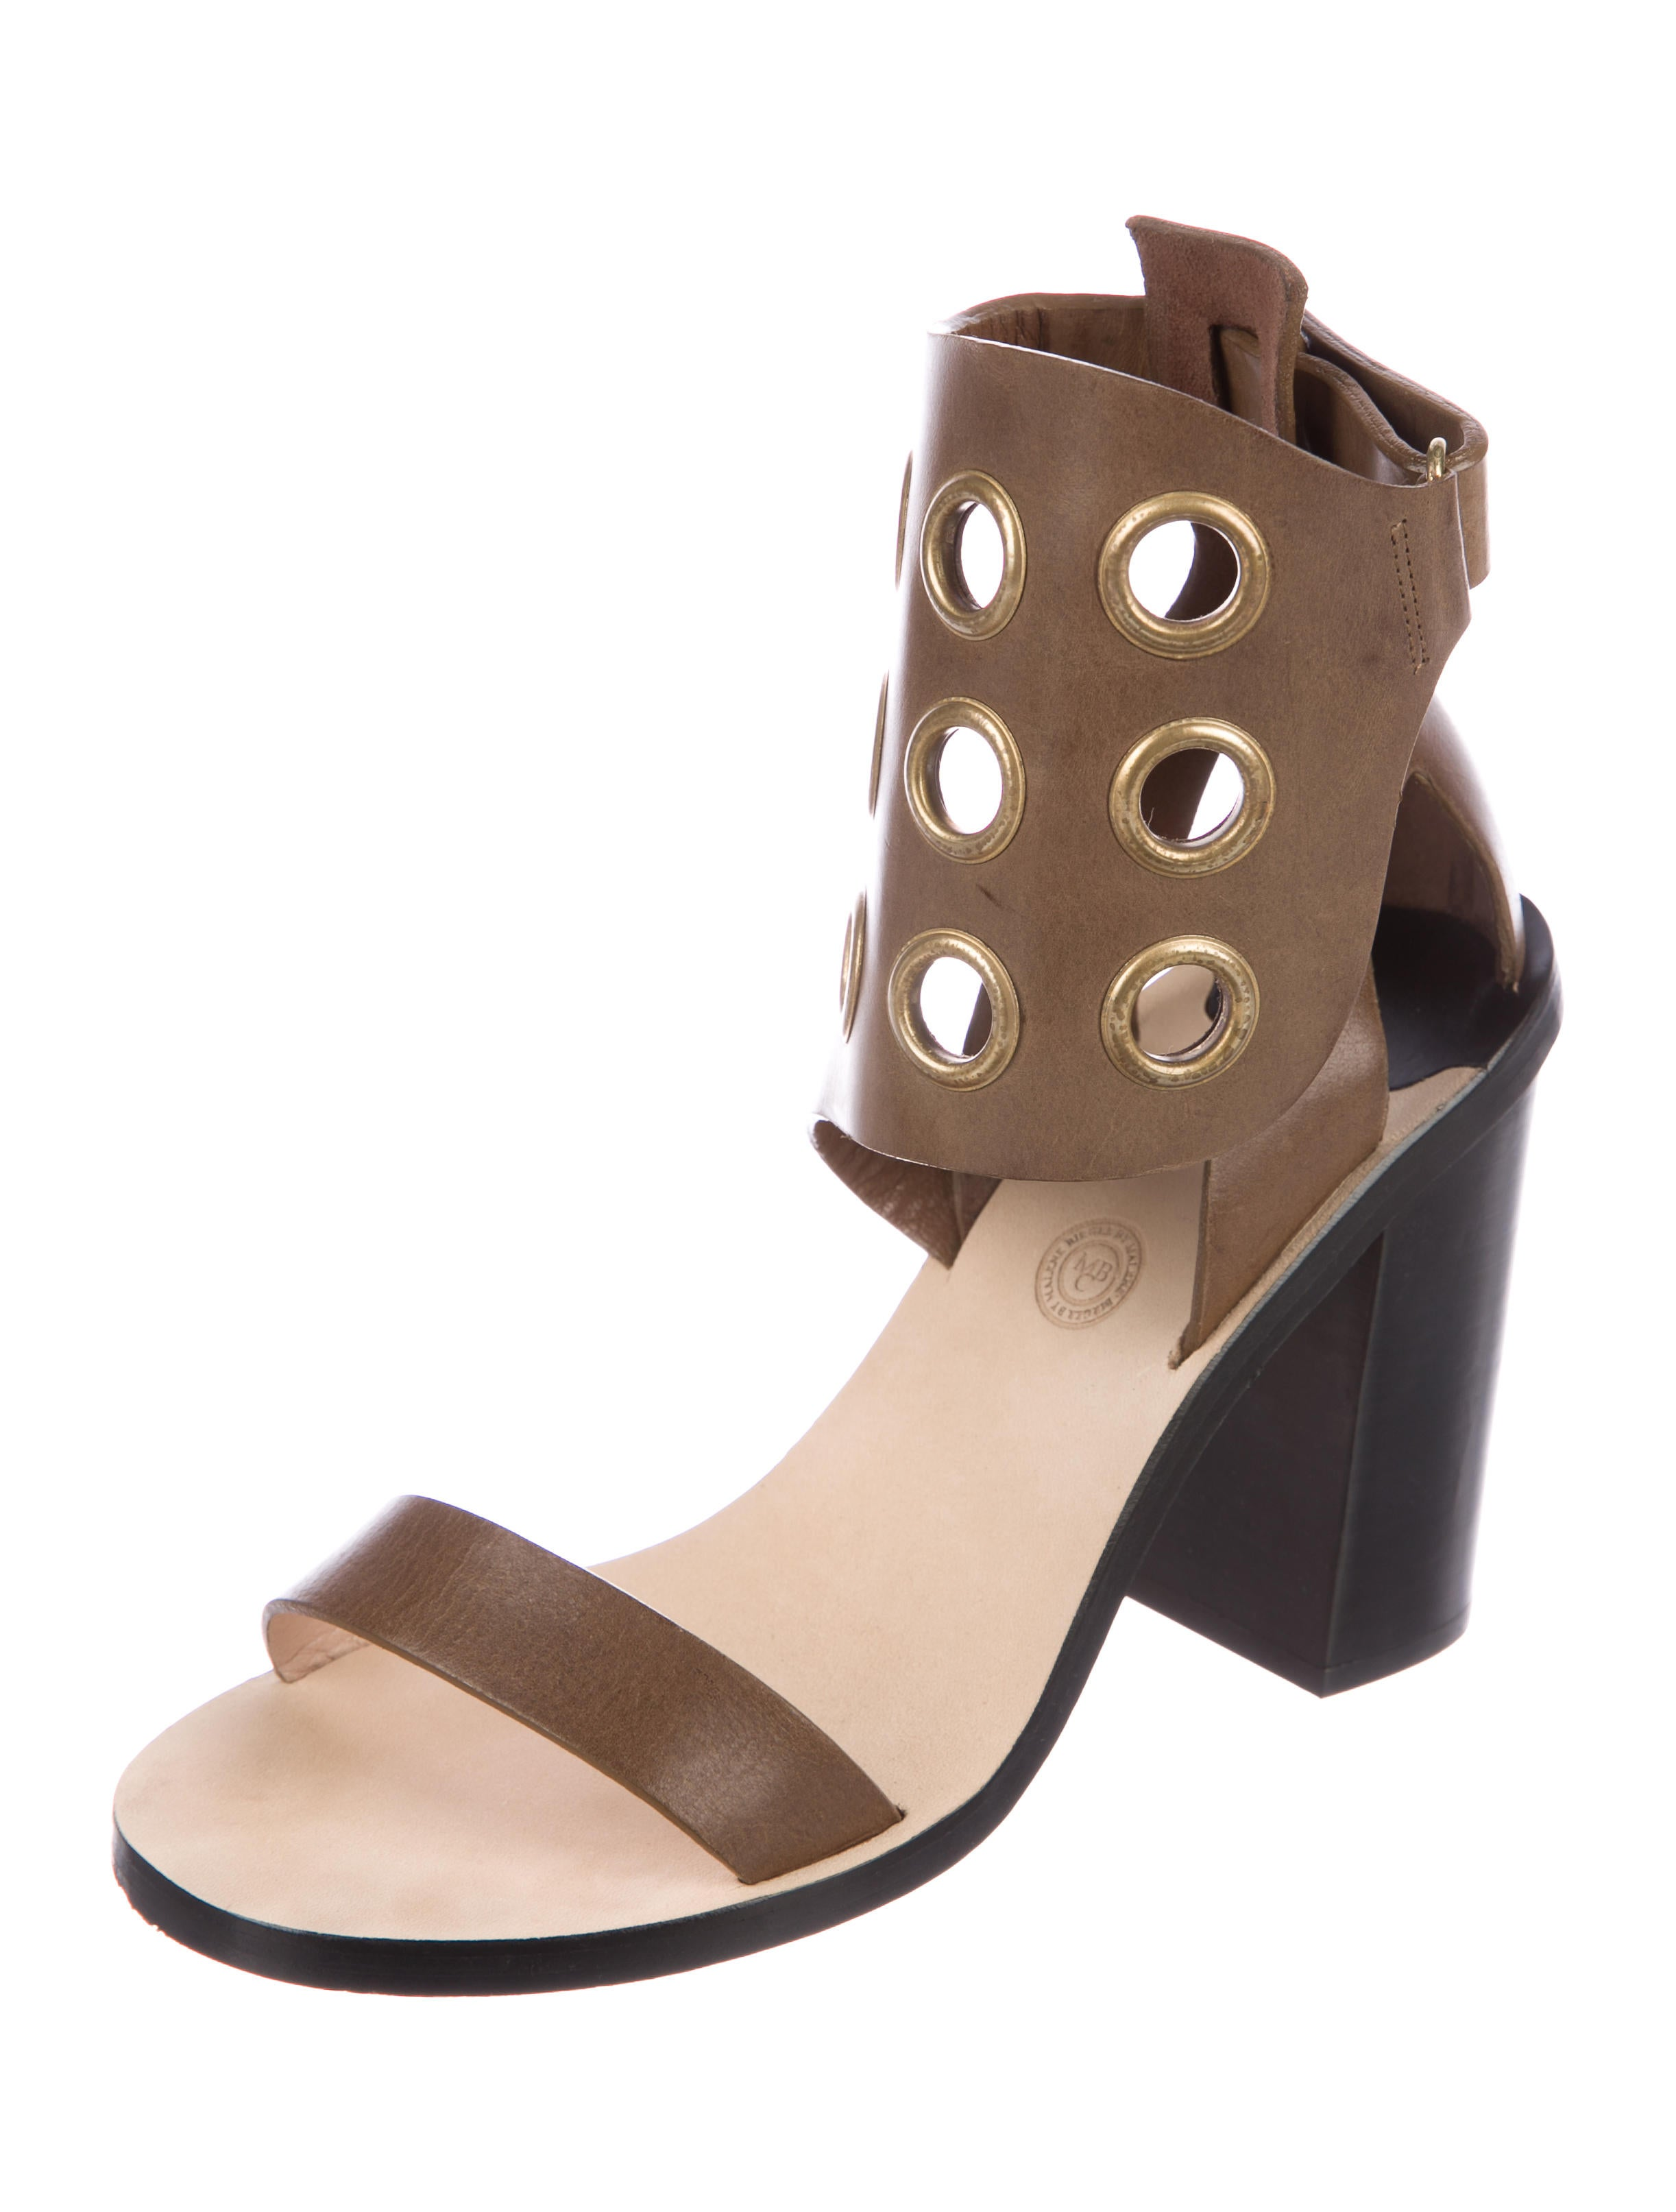 high quality buy online deals sale online By Malene Birger Leather Grommet Sandals shop cheap price cheap price outlet RYTeA